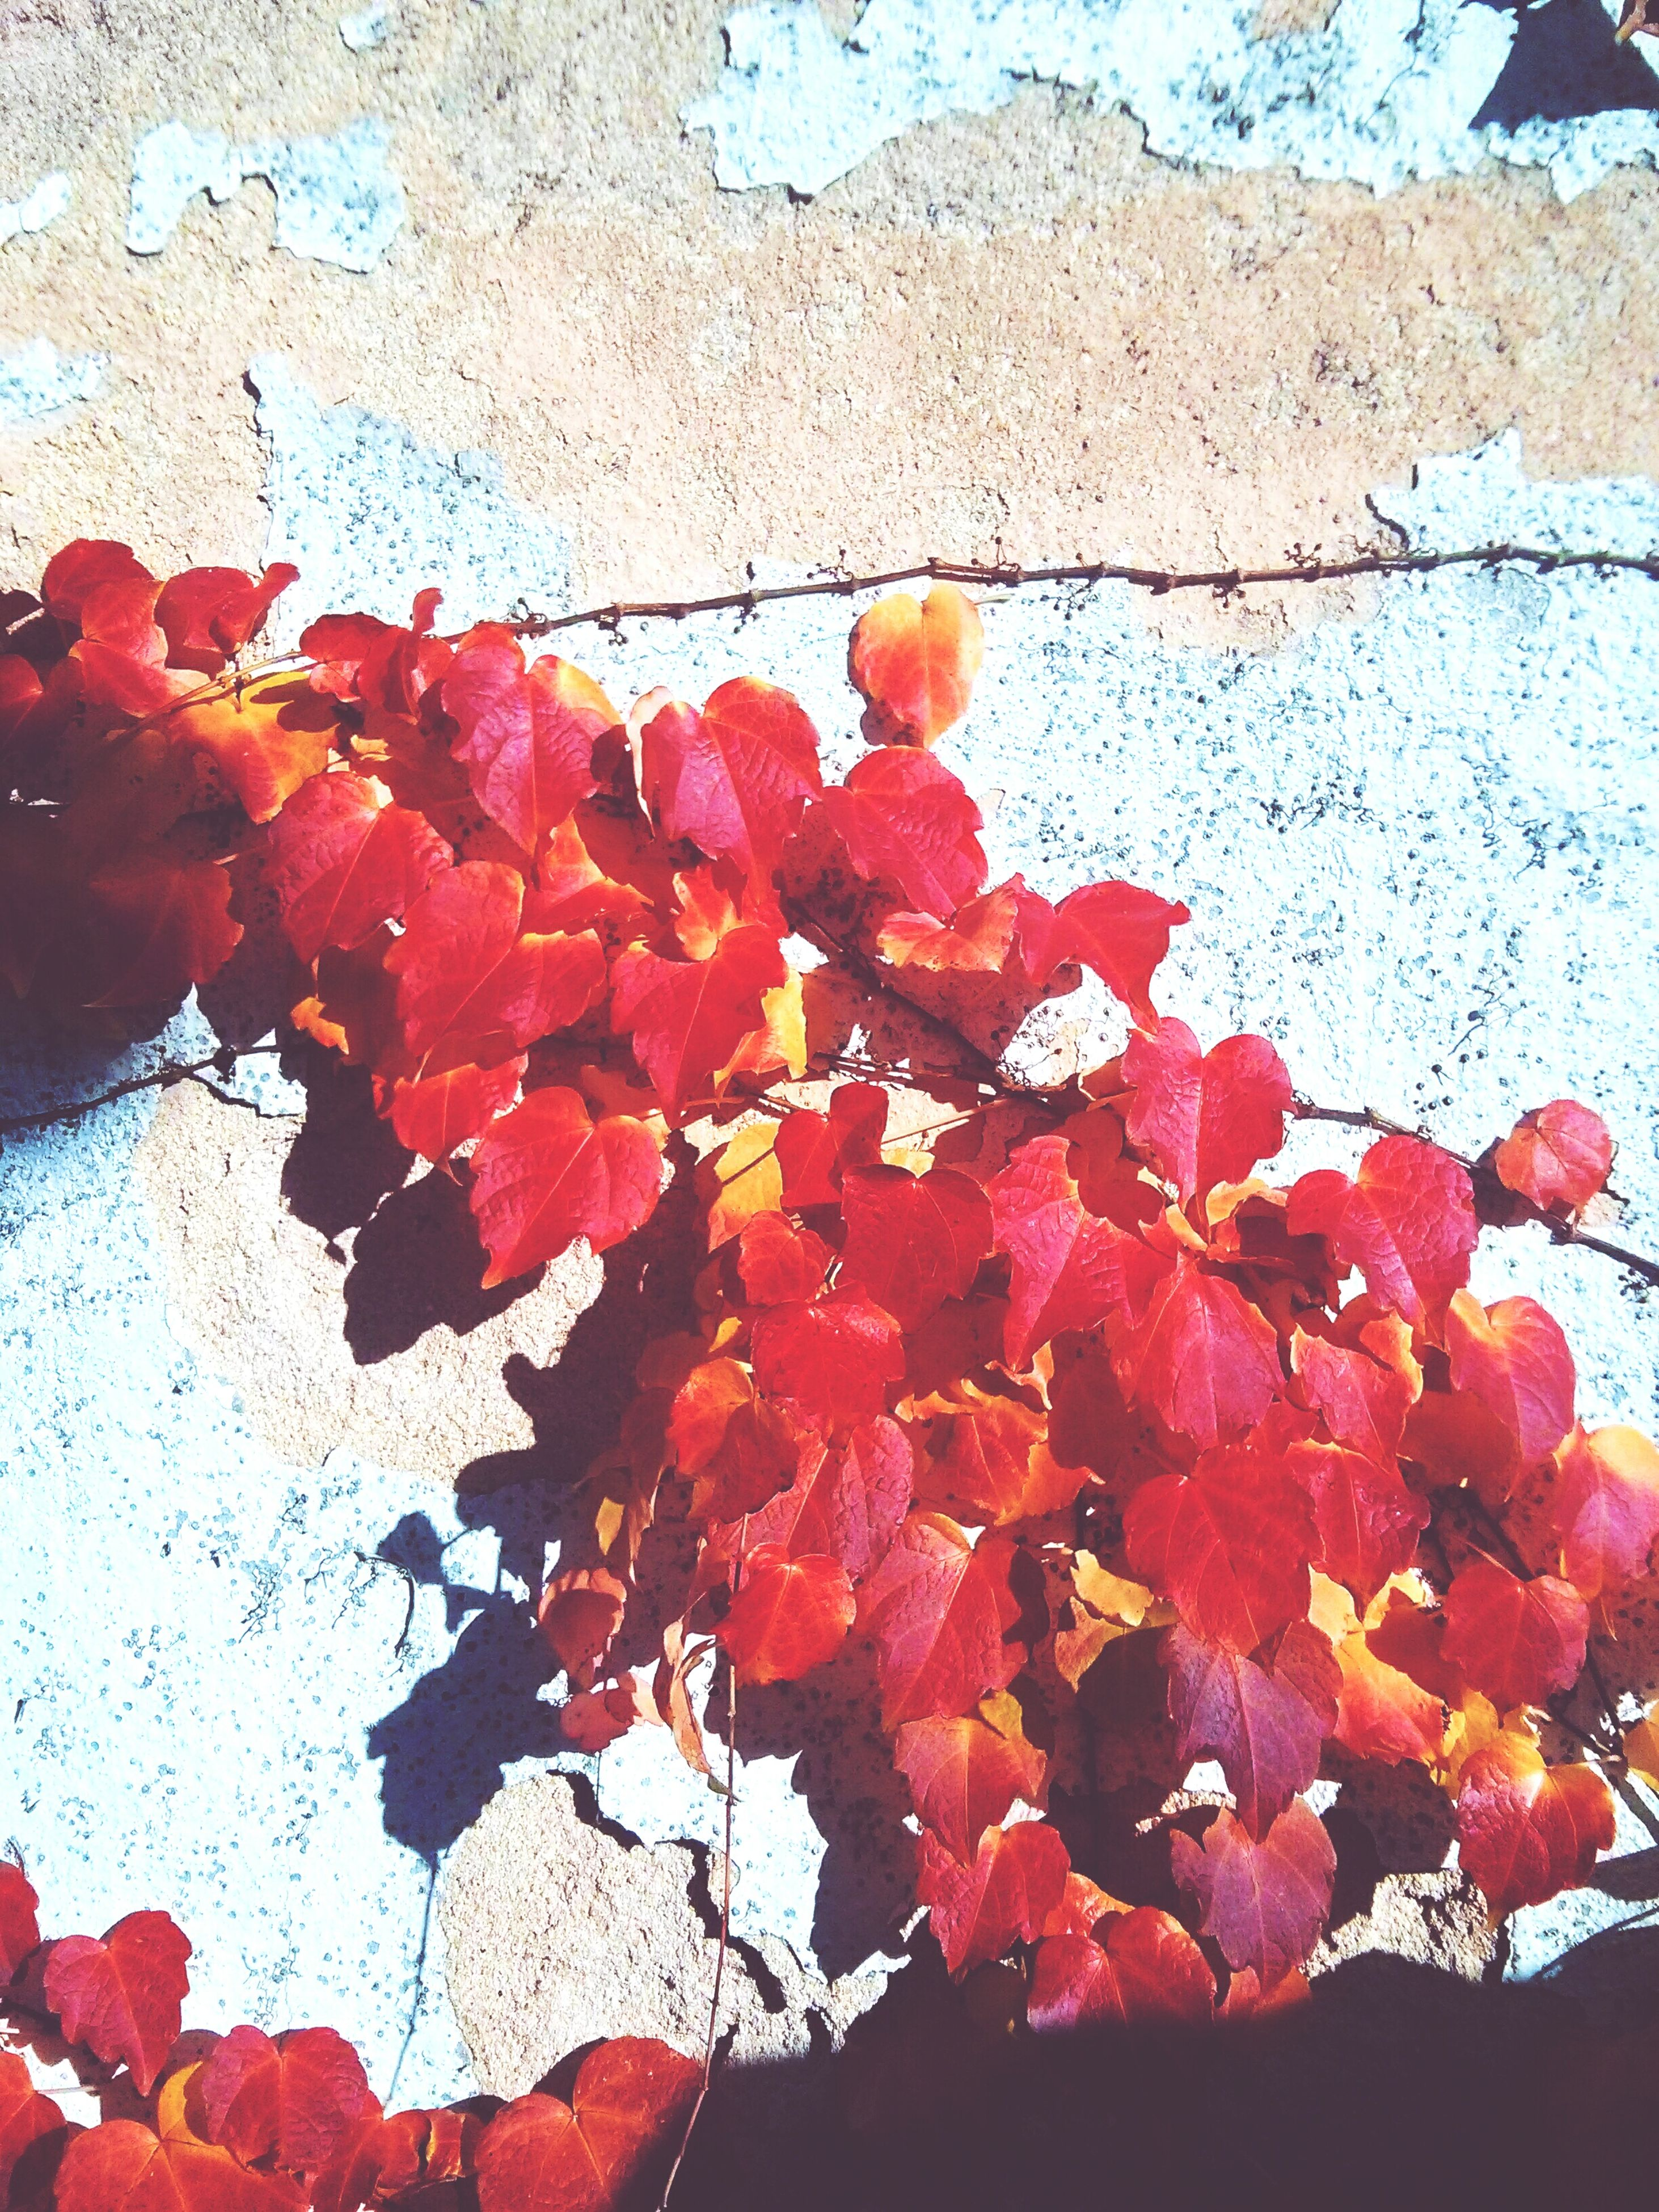 red, flower, leaf, autumn, season, freshness, fragility, growth, change, branch, nature, close-up, day, beauty in nature, wall - building feature, outdoors, built structure, no people, blossom, plant